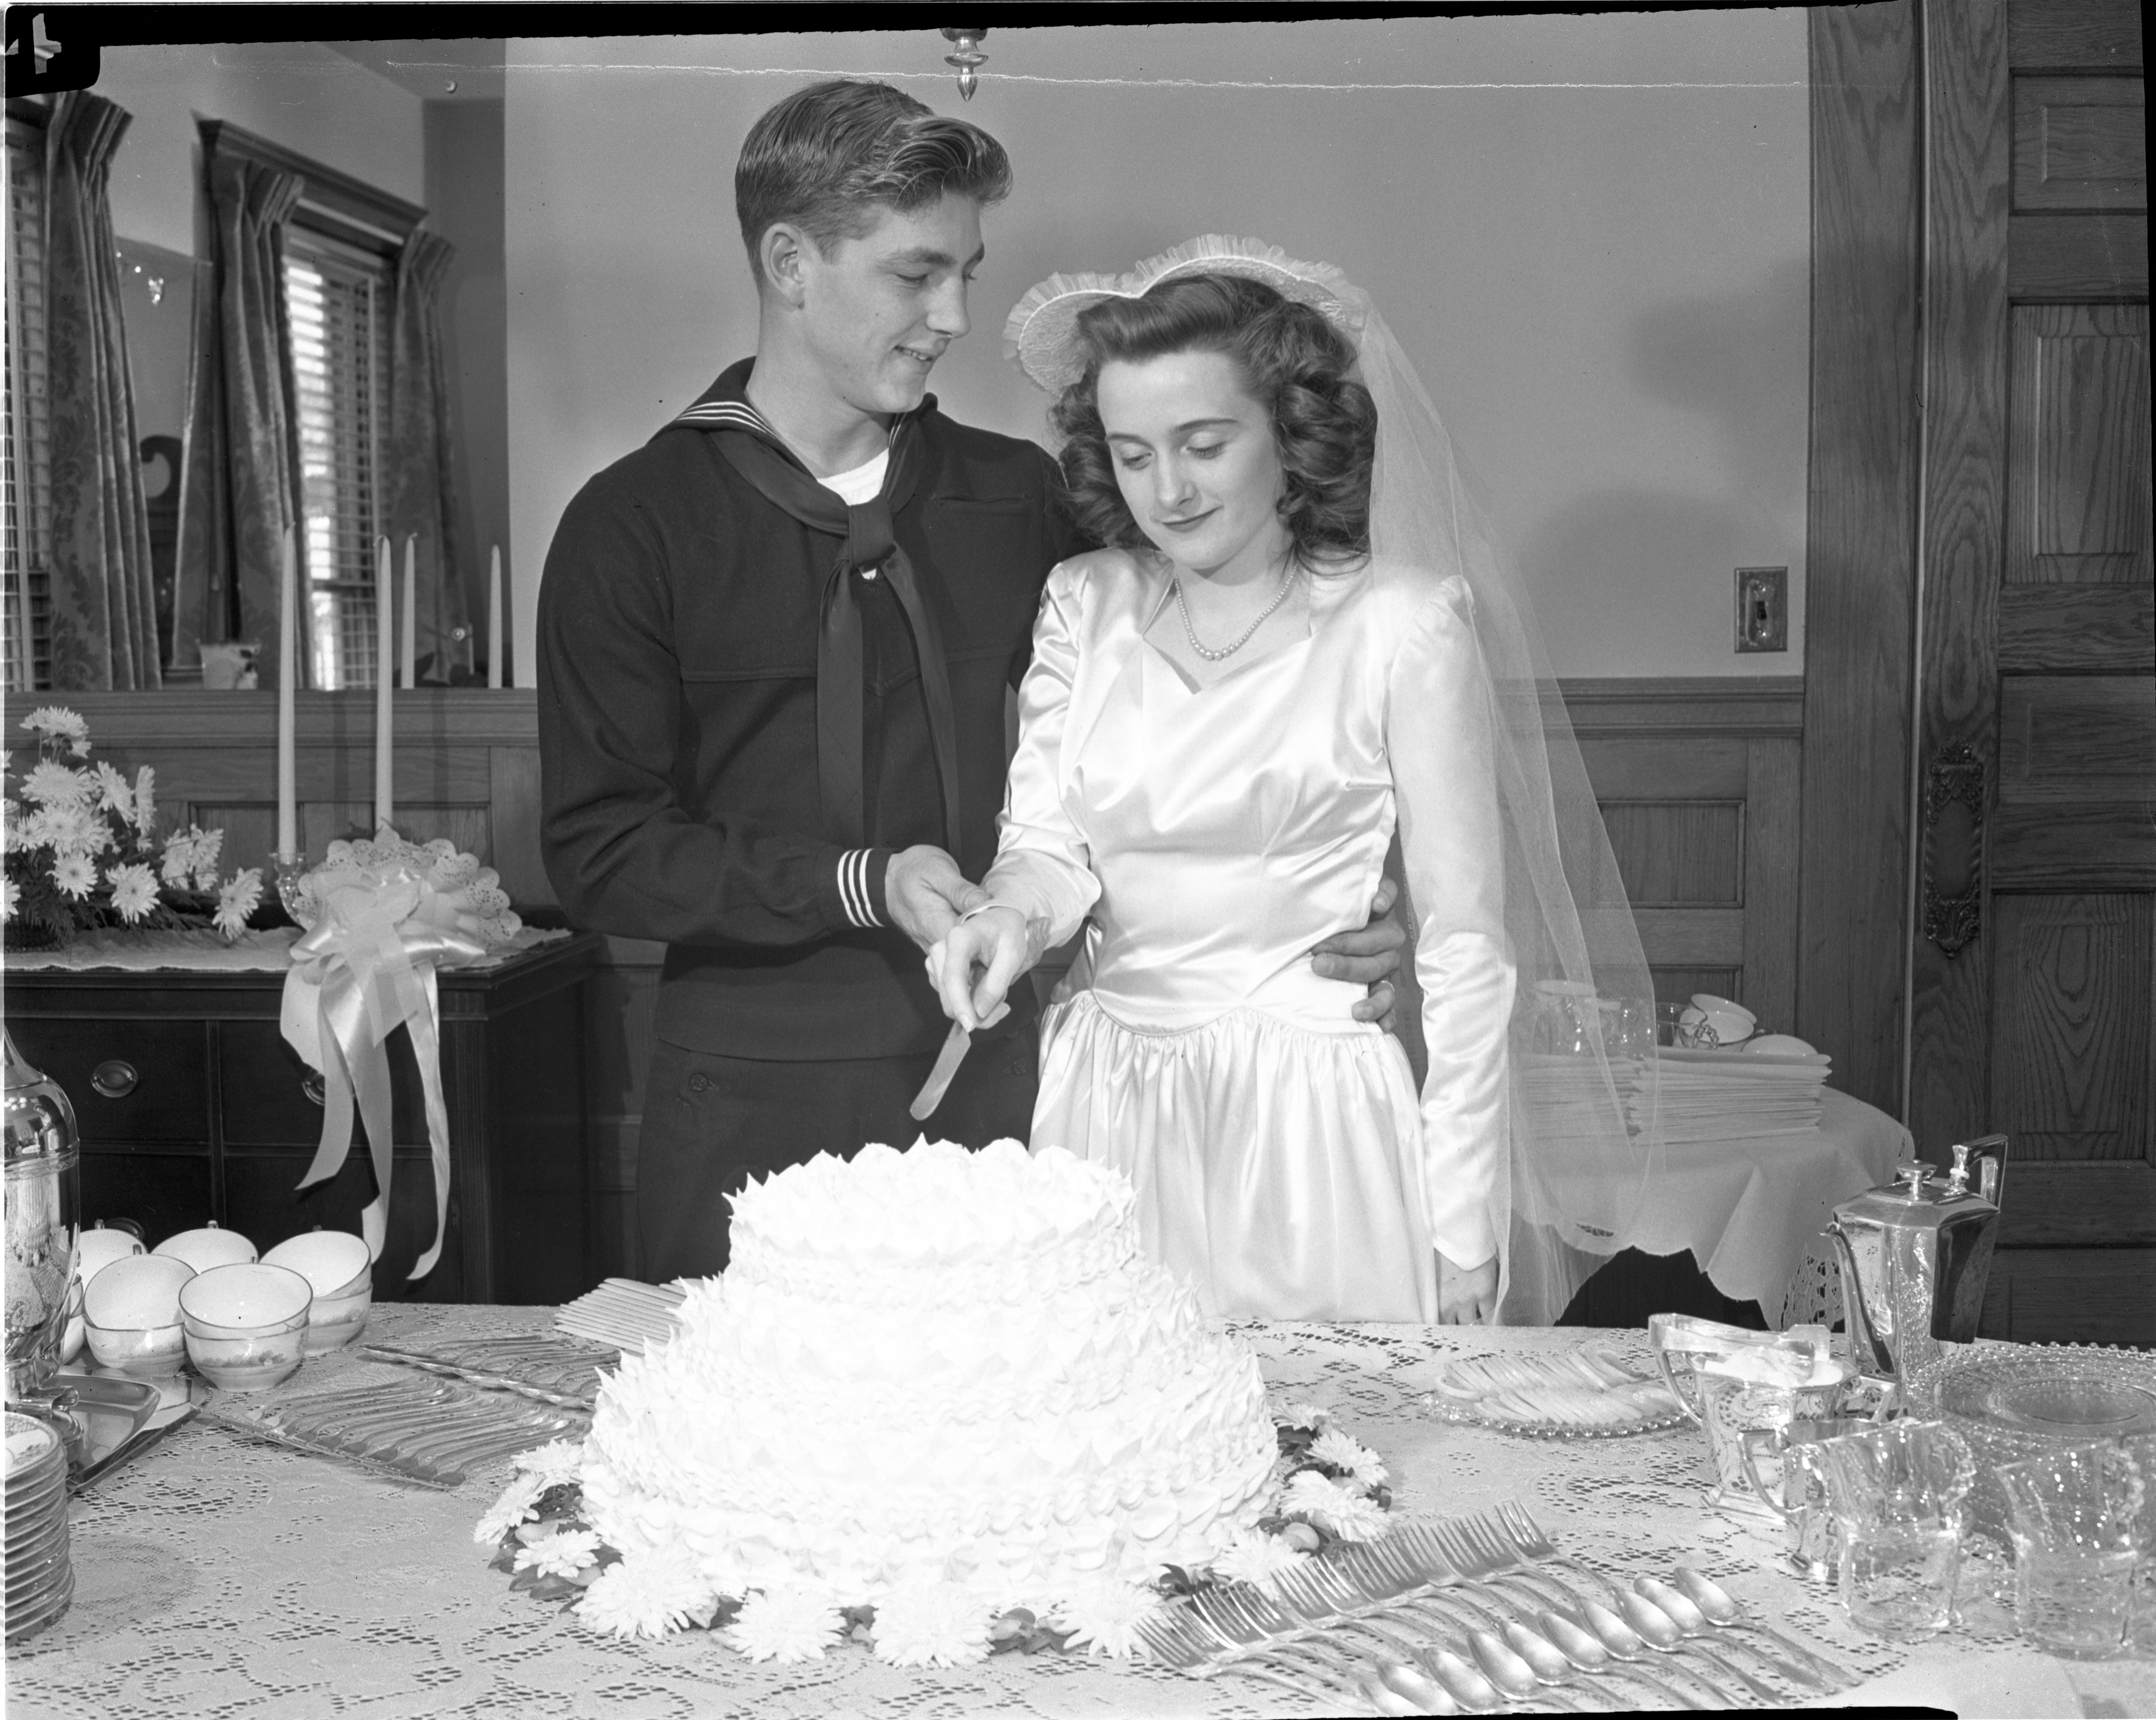 Walter & Patricia Bartell Cut Their Wedding Cake - December 15, 1945 image